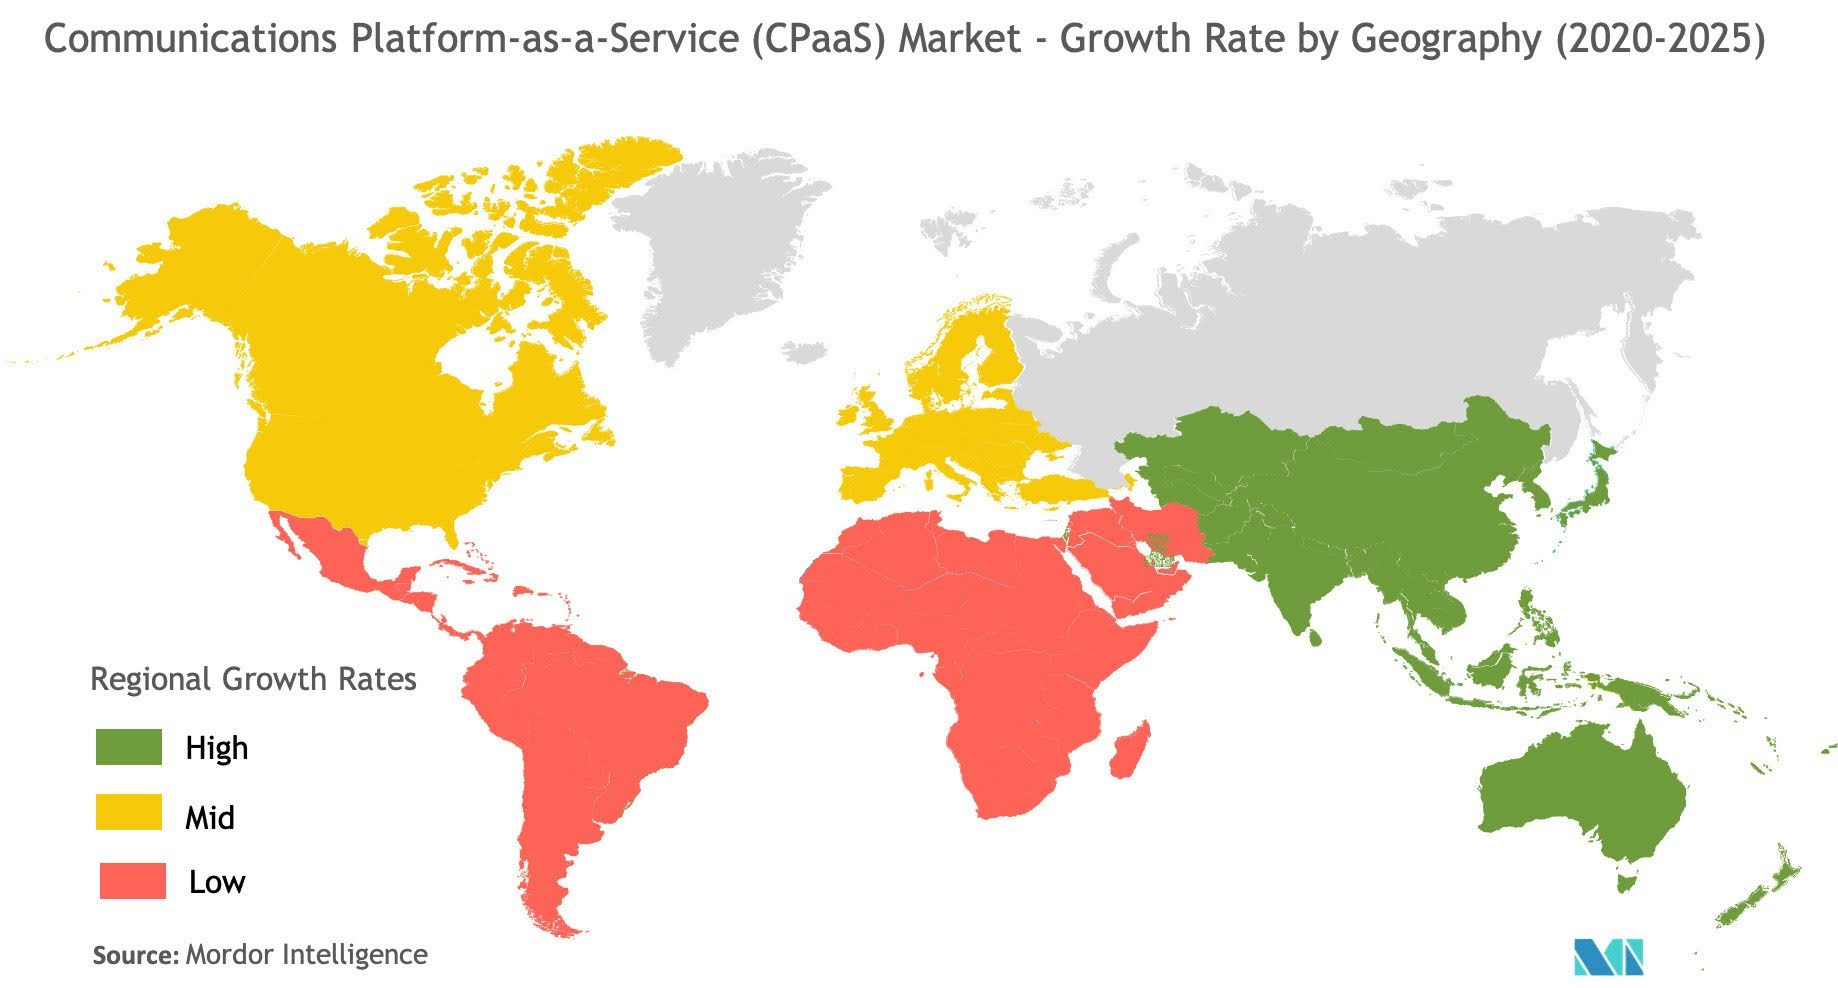 Communications Platform-as-a-Service CPaaS Market - Growth Rate by Geograohy (2020-2025)